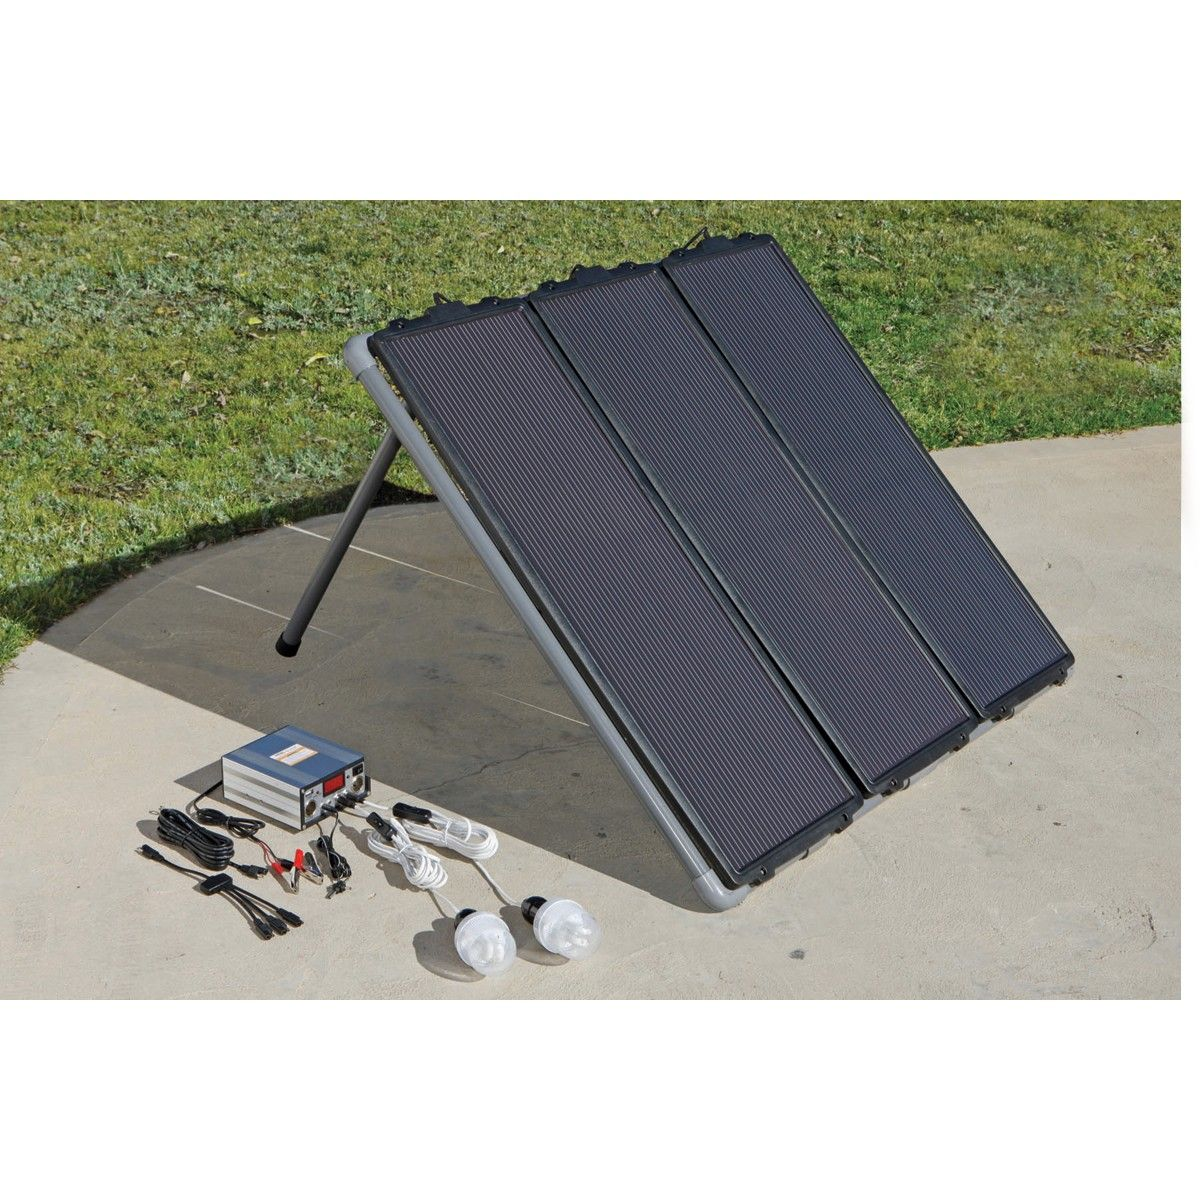 Solar Panel Kit 45 Watt Solar Panels Best Solar Panels Solar Panel Kits